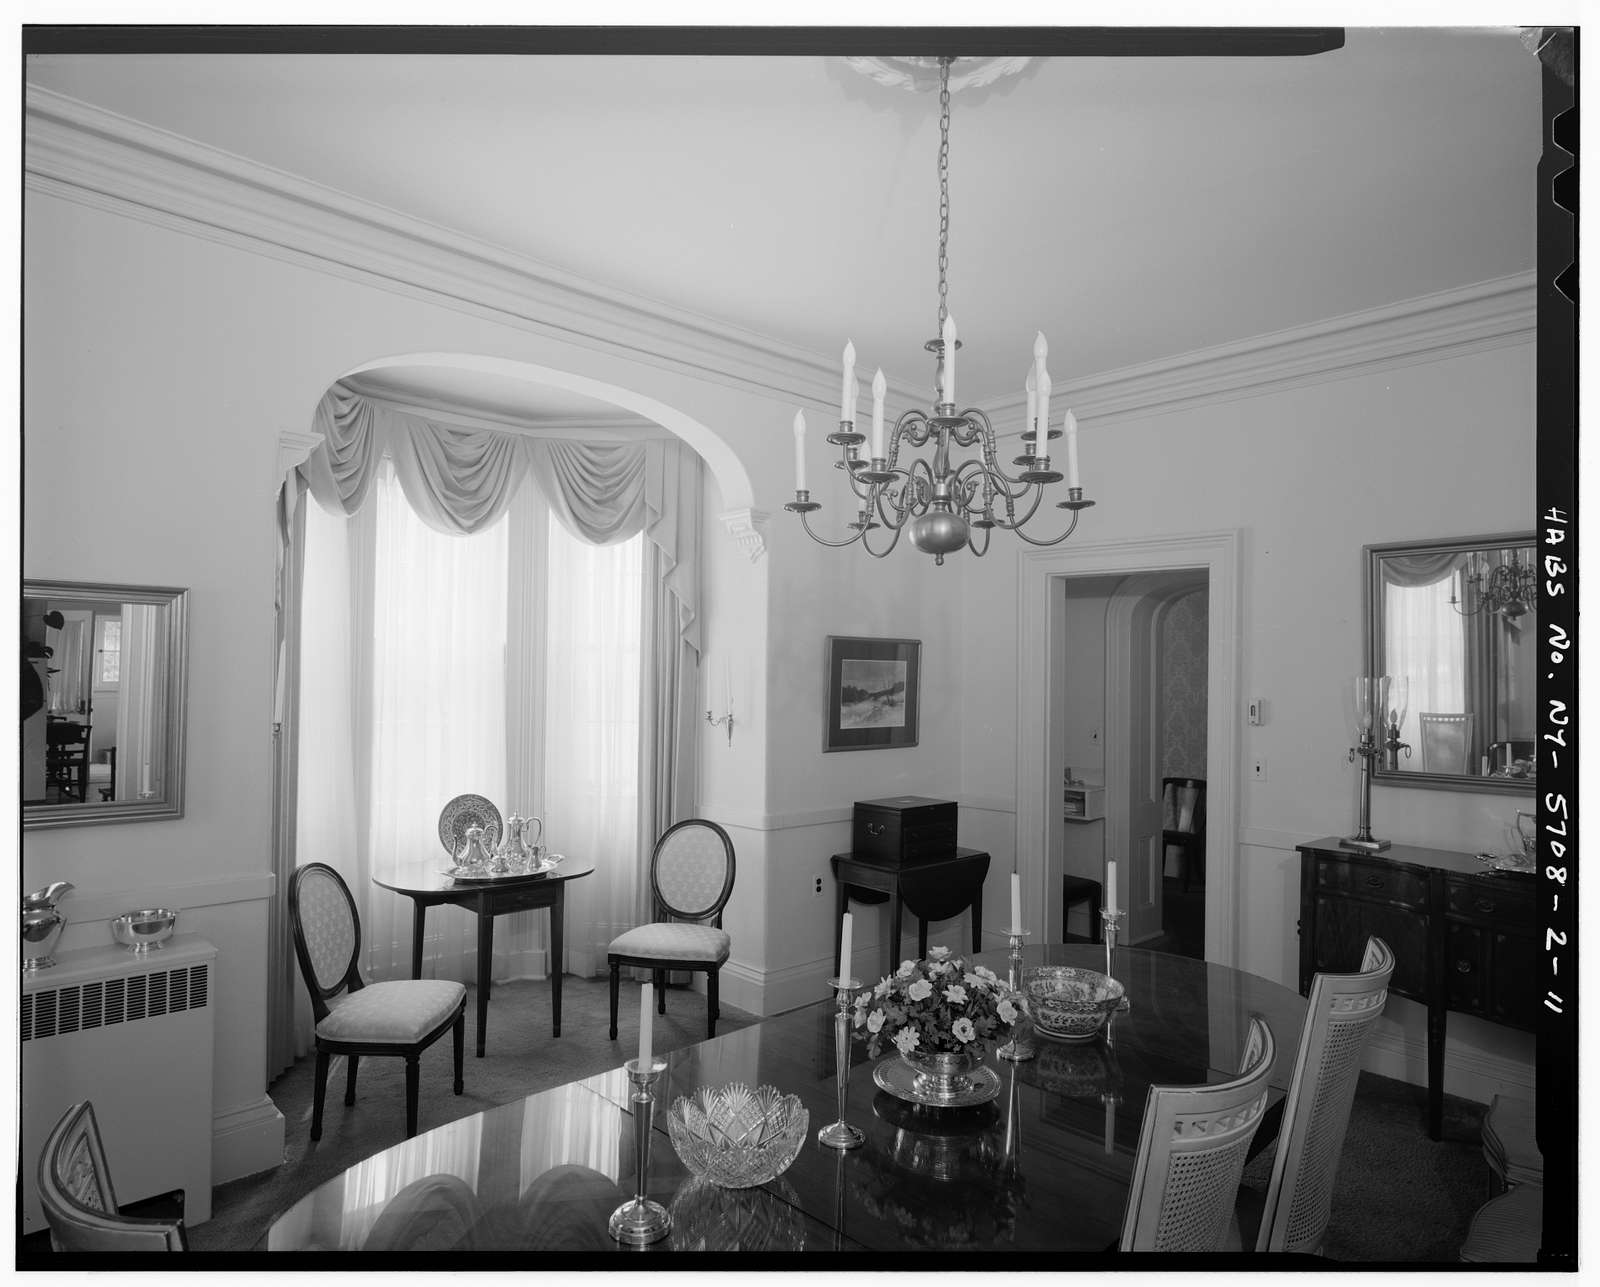 U. S. Military Academy, Officer's Quarters, West Point, Orange County, NY